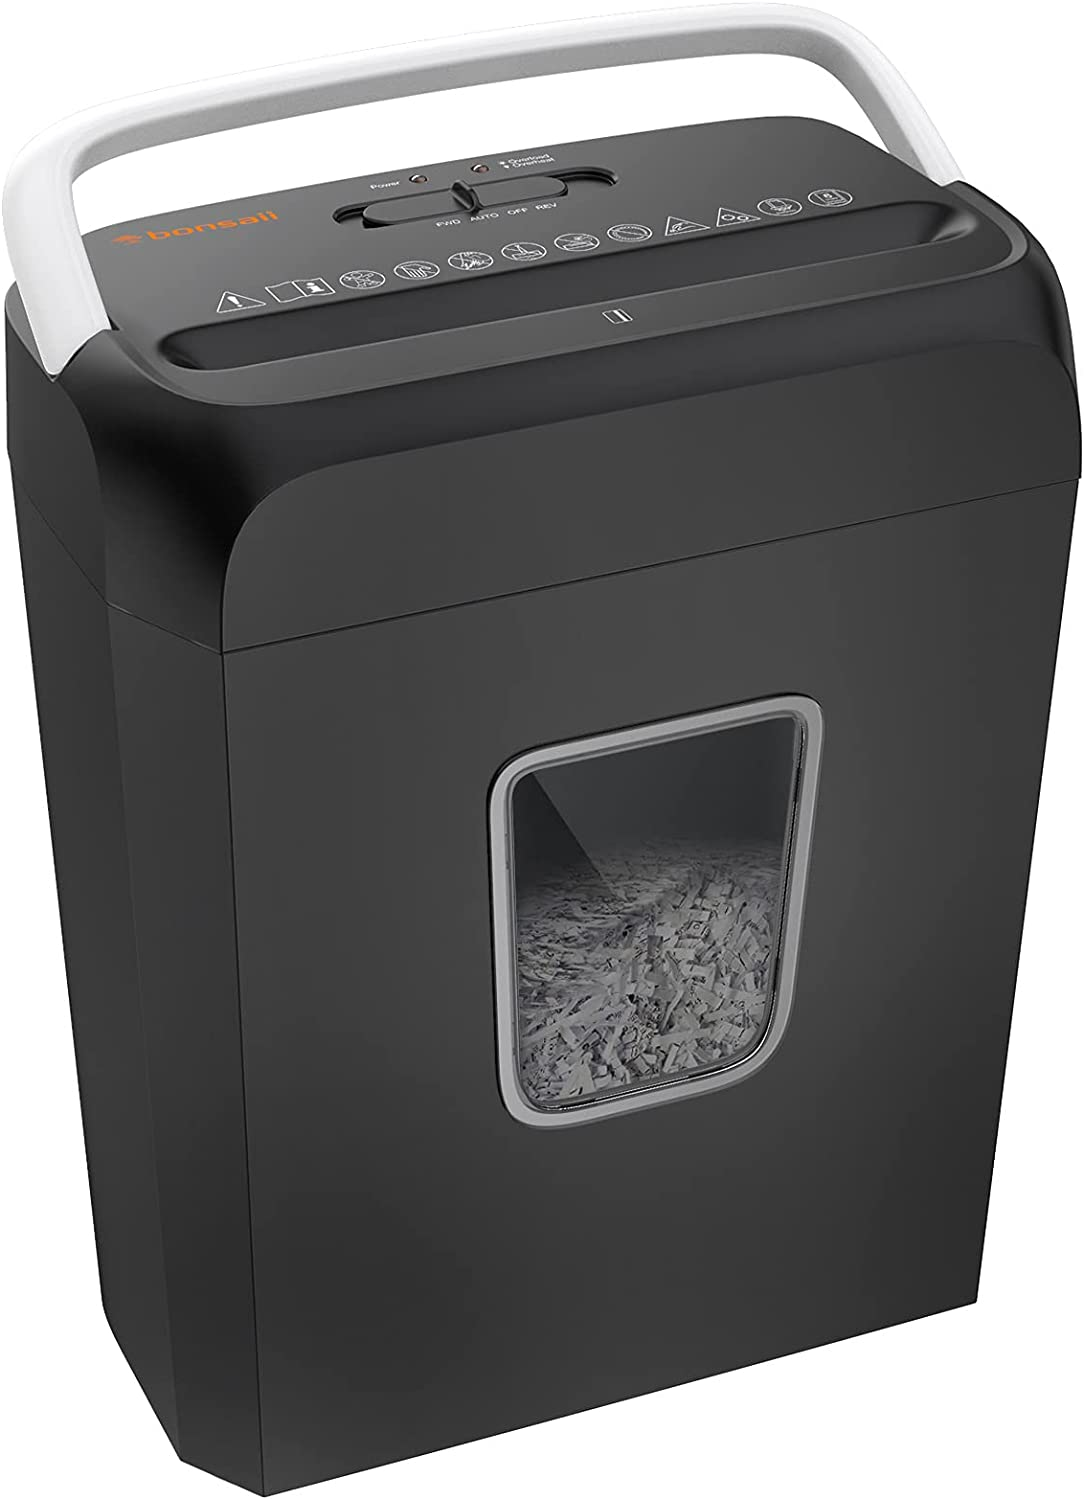 Shredder for Home, Bonsaii 6 Sheet Cross Cut Paper Shredder for Small Home Office Use, Portable Handle Design with 3.4 Gallons Wastebasket